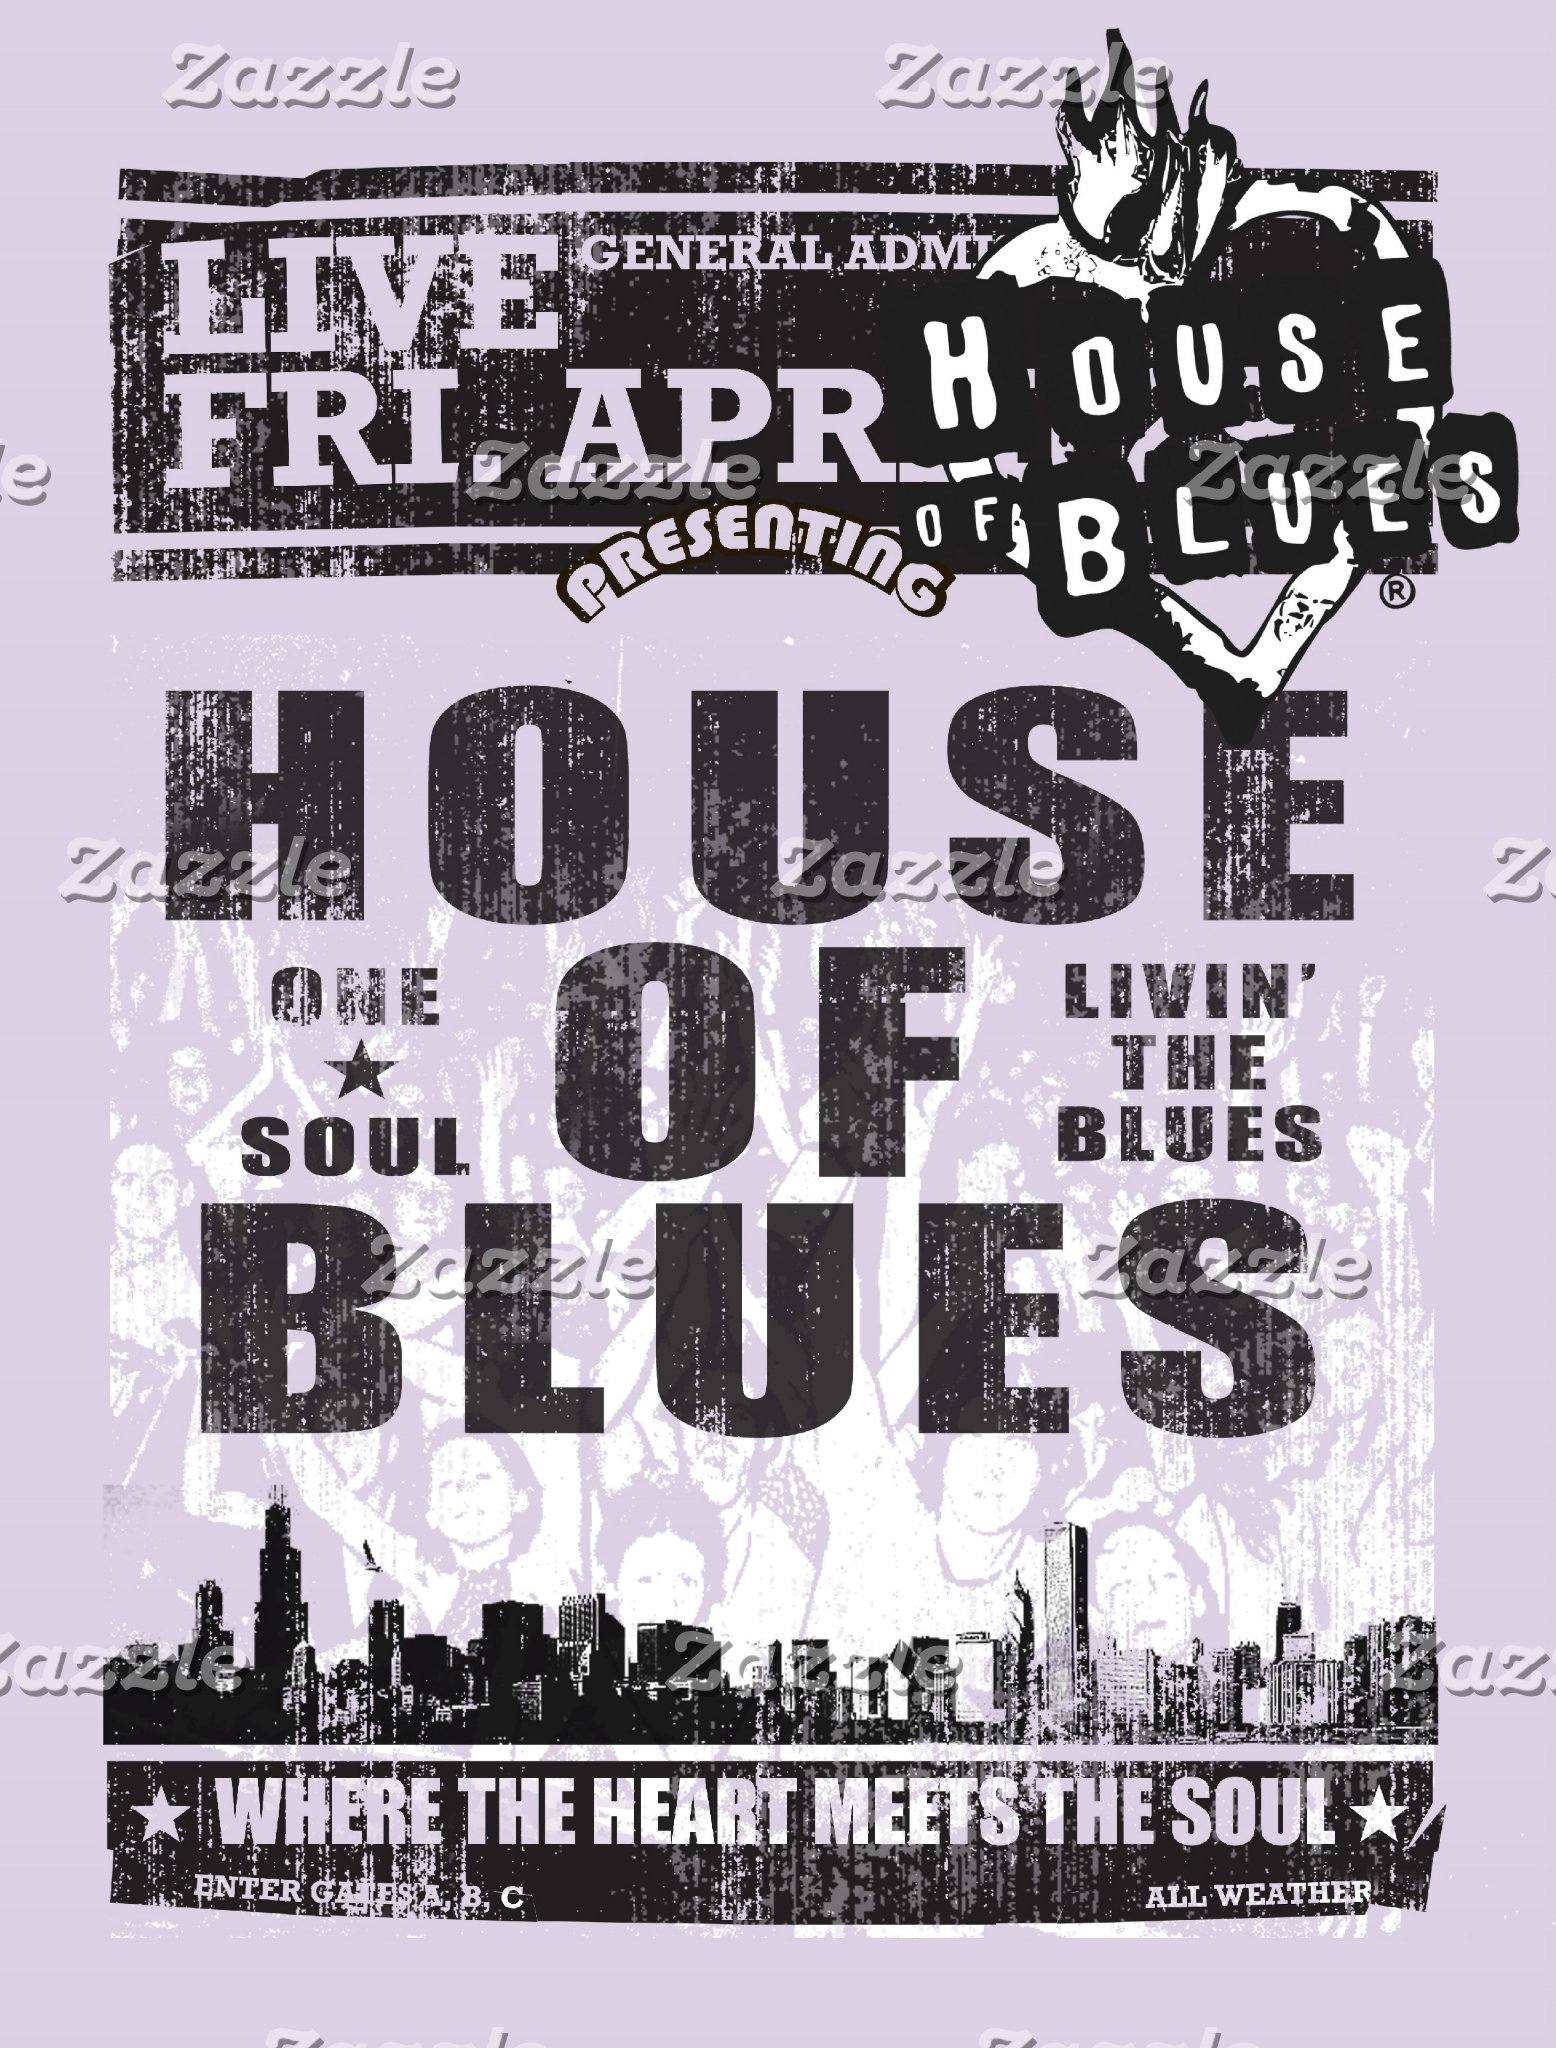 House of Blues - Livin' the Blues